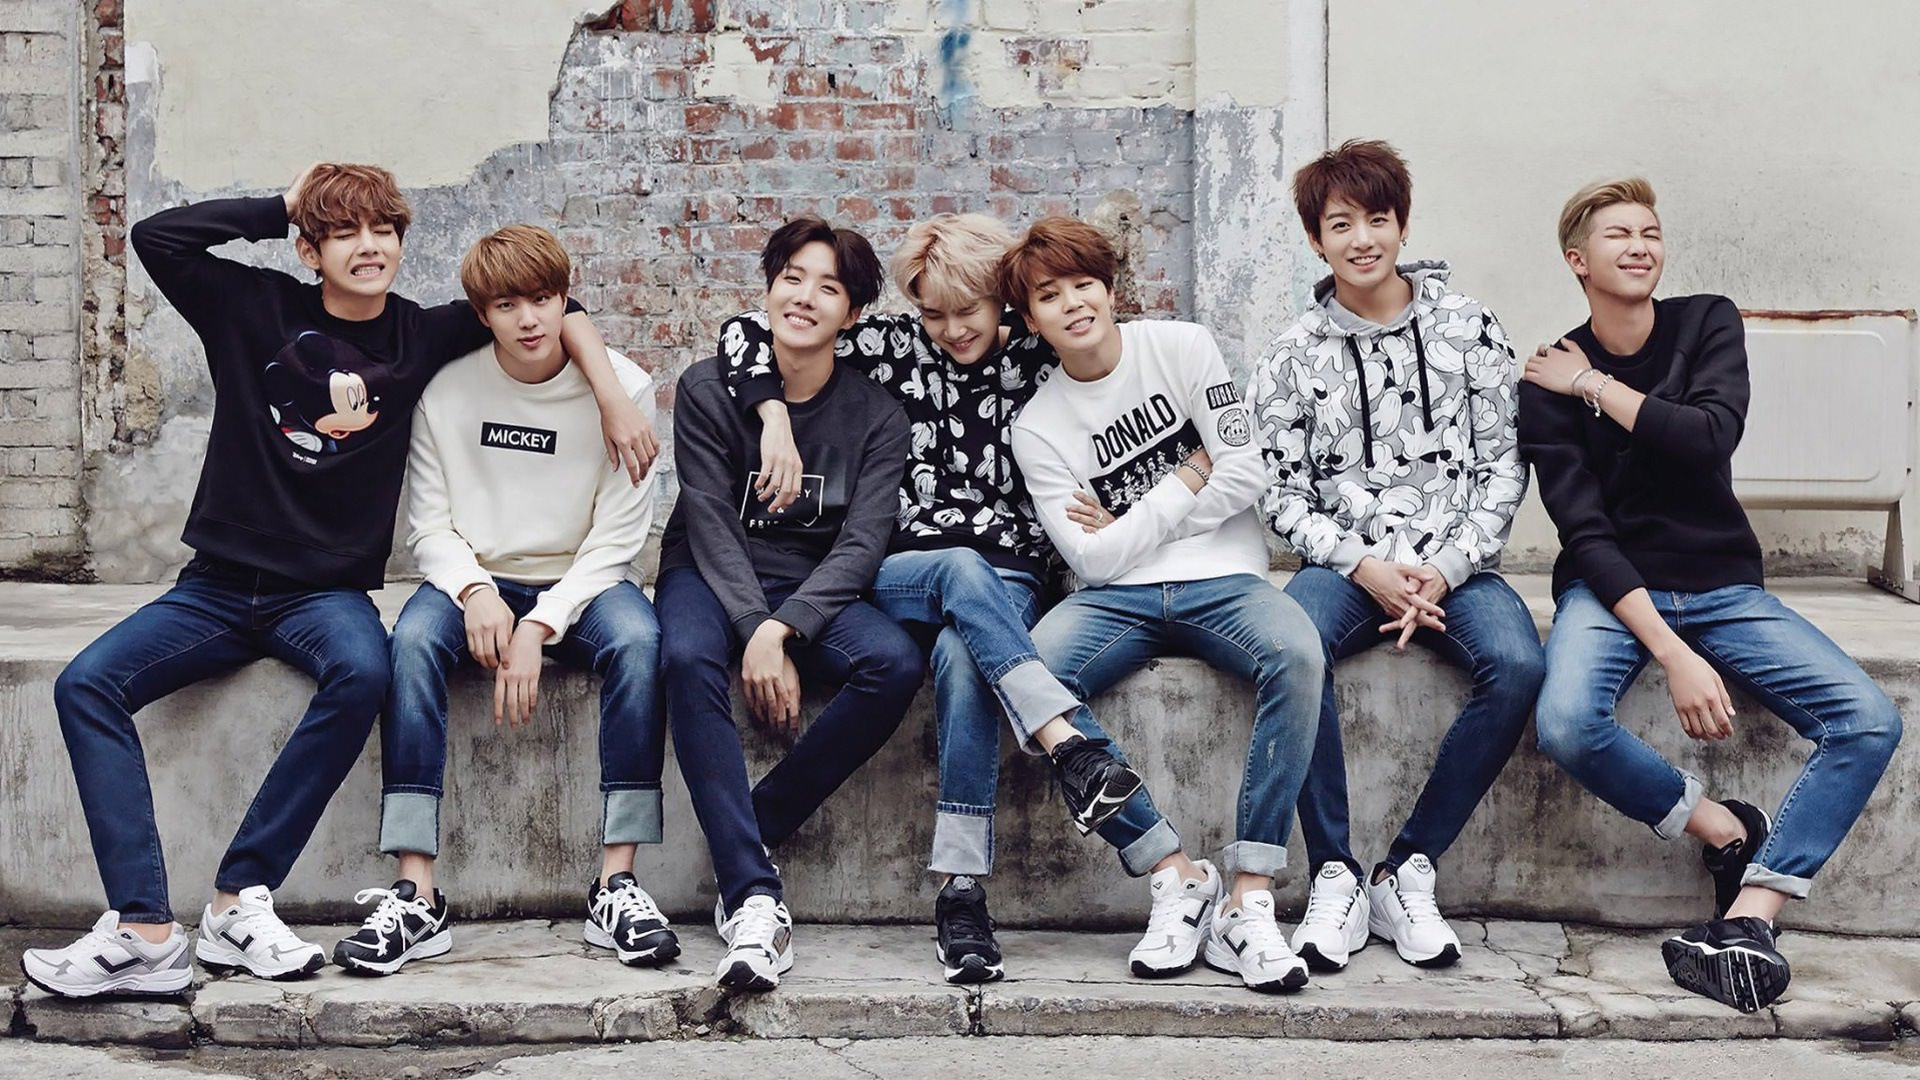 Bts Wallpapers Desktop